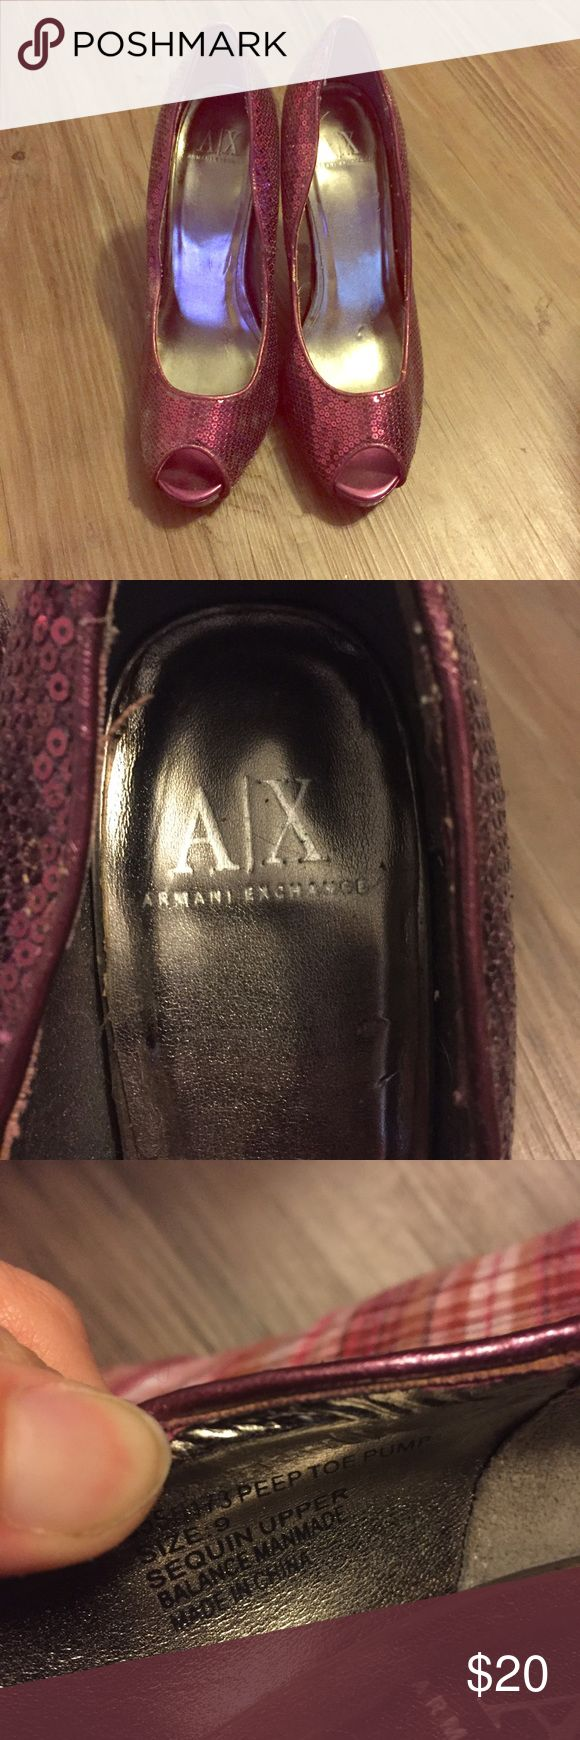 Purple sequined heels Great condition! A/X Armani Exchange Shoes Heels